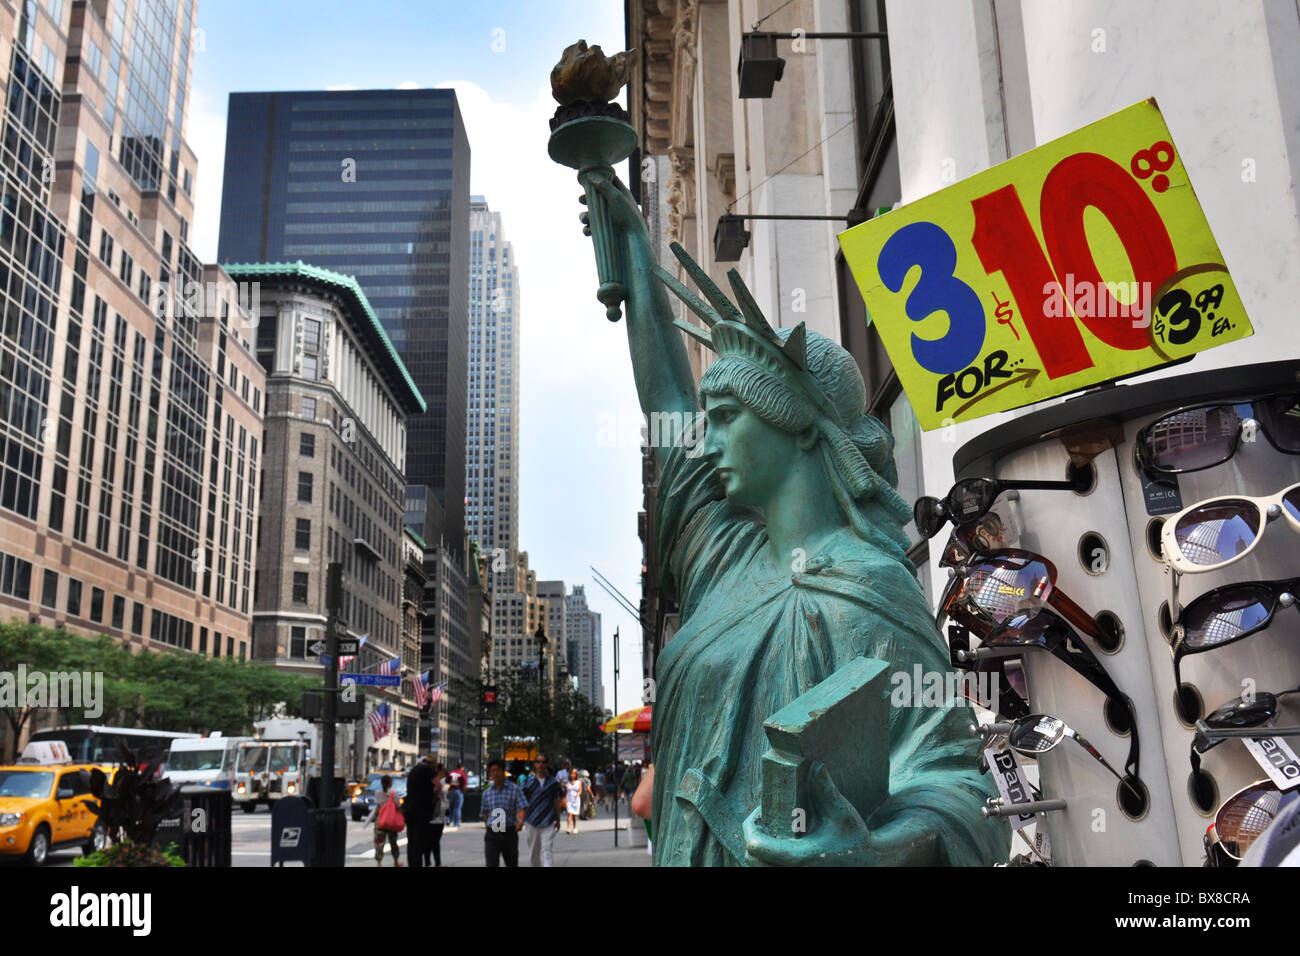 New York city cheap sunglasses for sale on Fifth Avenue. - Stock Image